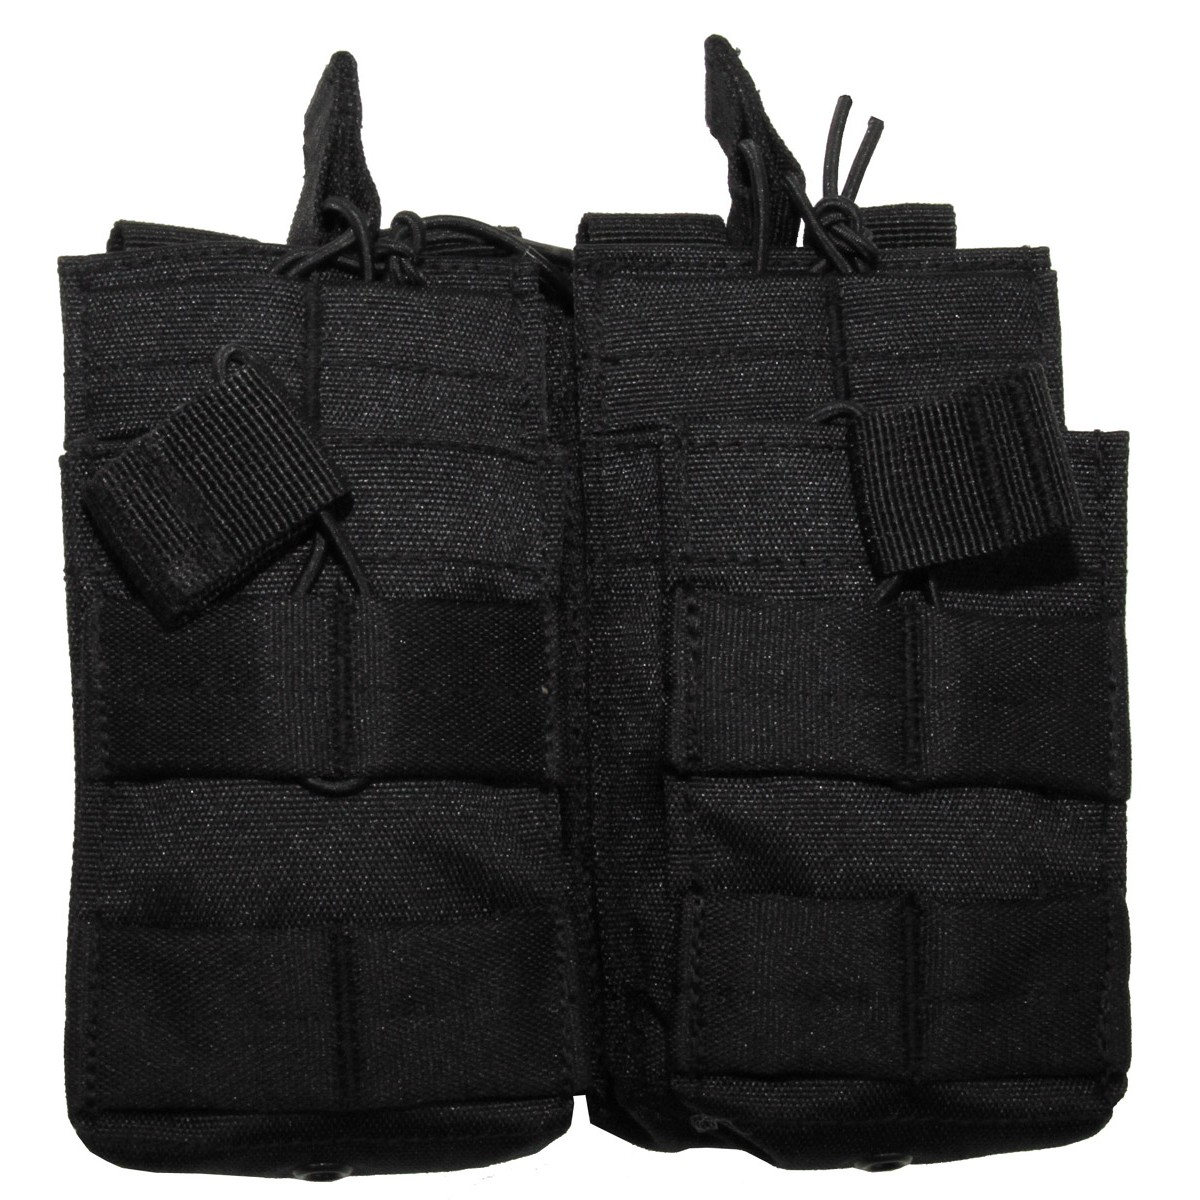 Modular Molle Magazine Open Double Pouch - Black